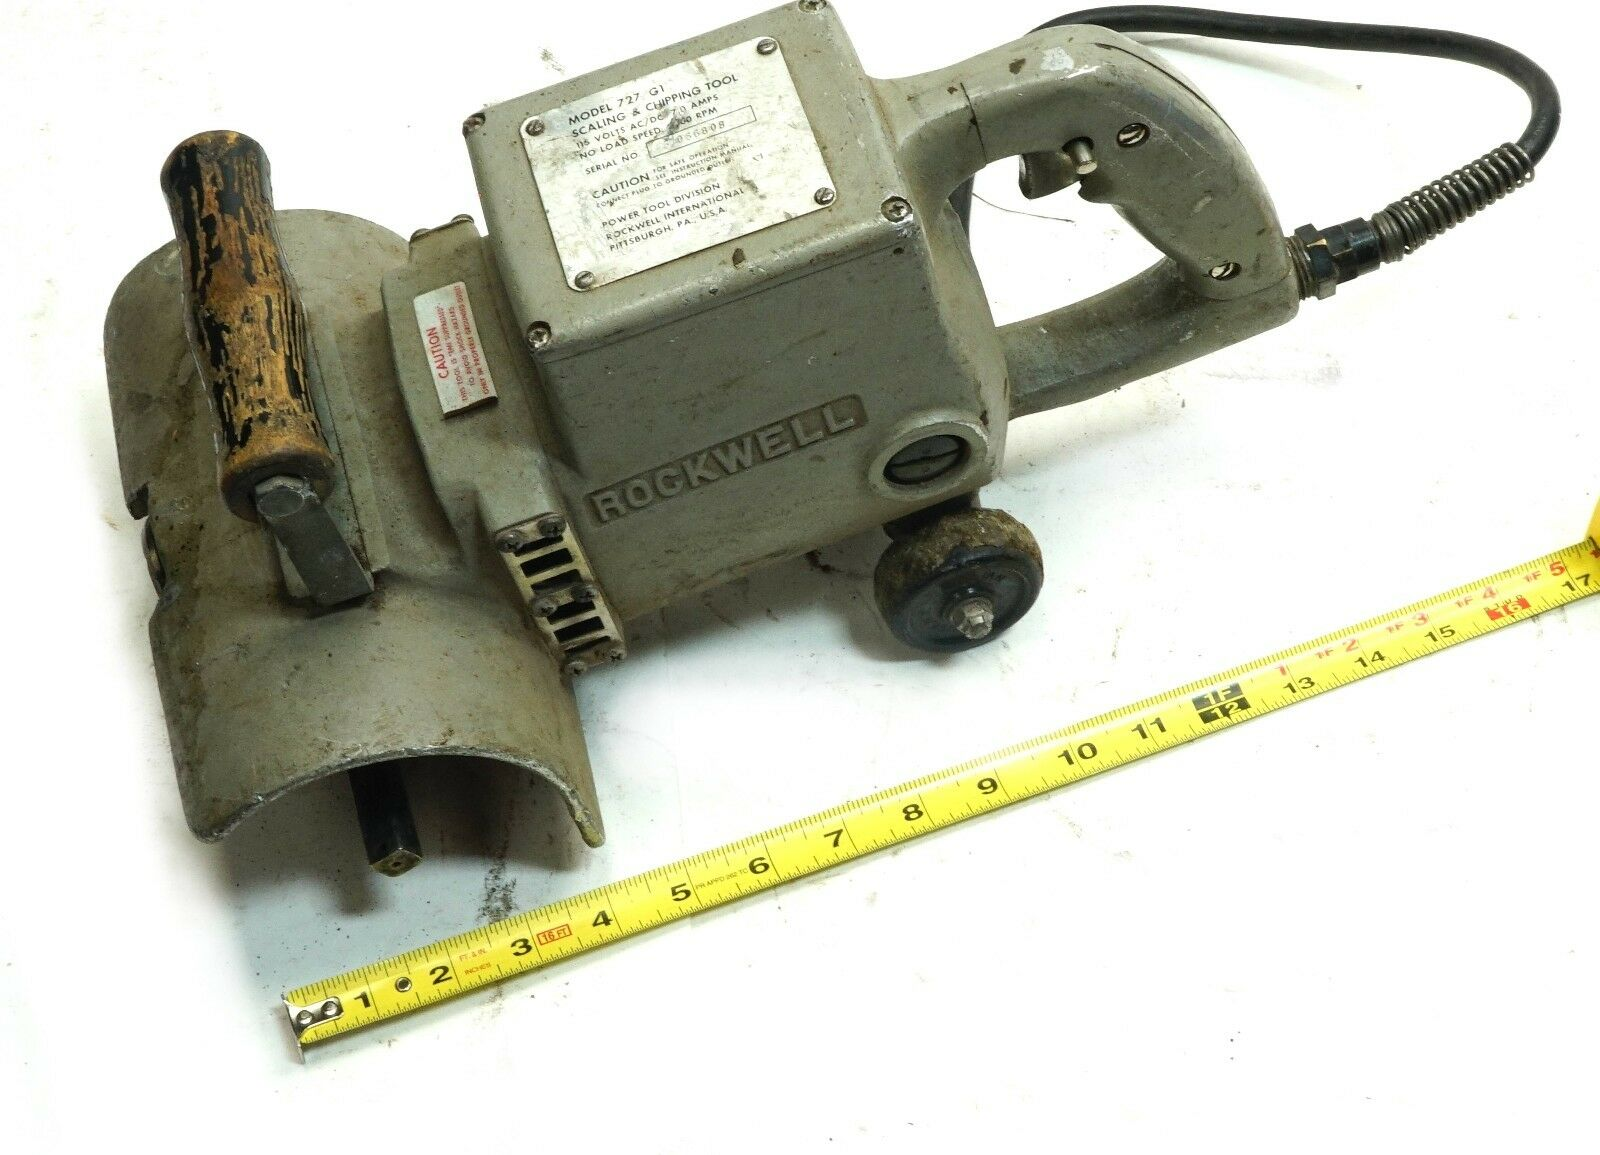 Rockwell 727 Electric Surface Scaling /& Chipping Tool 115V AC//DC 7 Amp For Parts